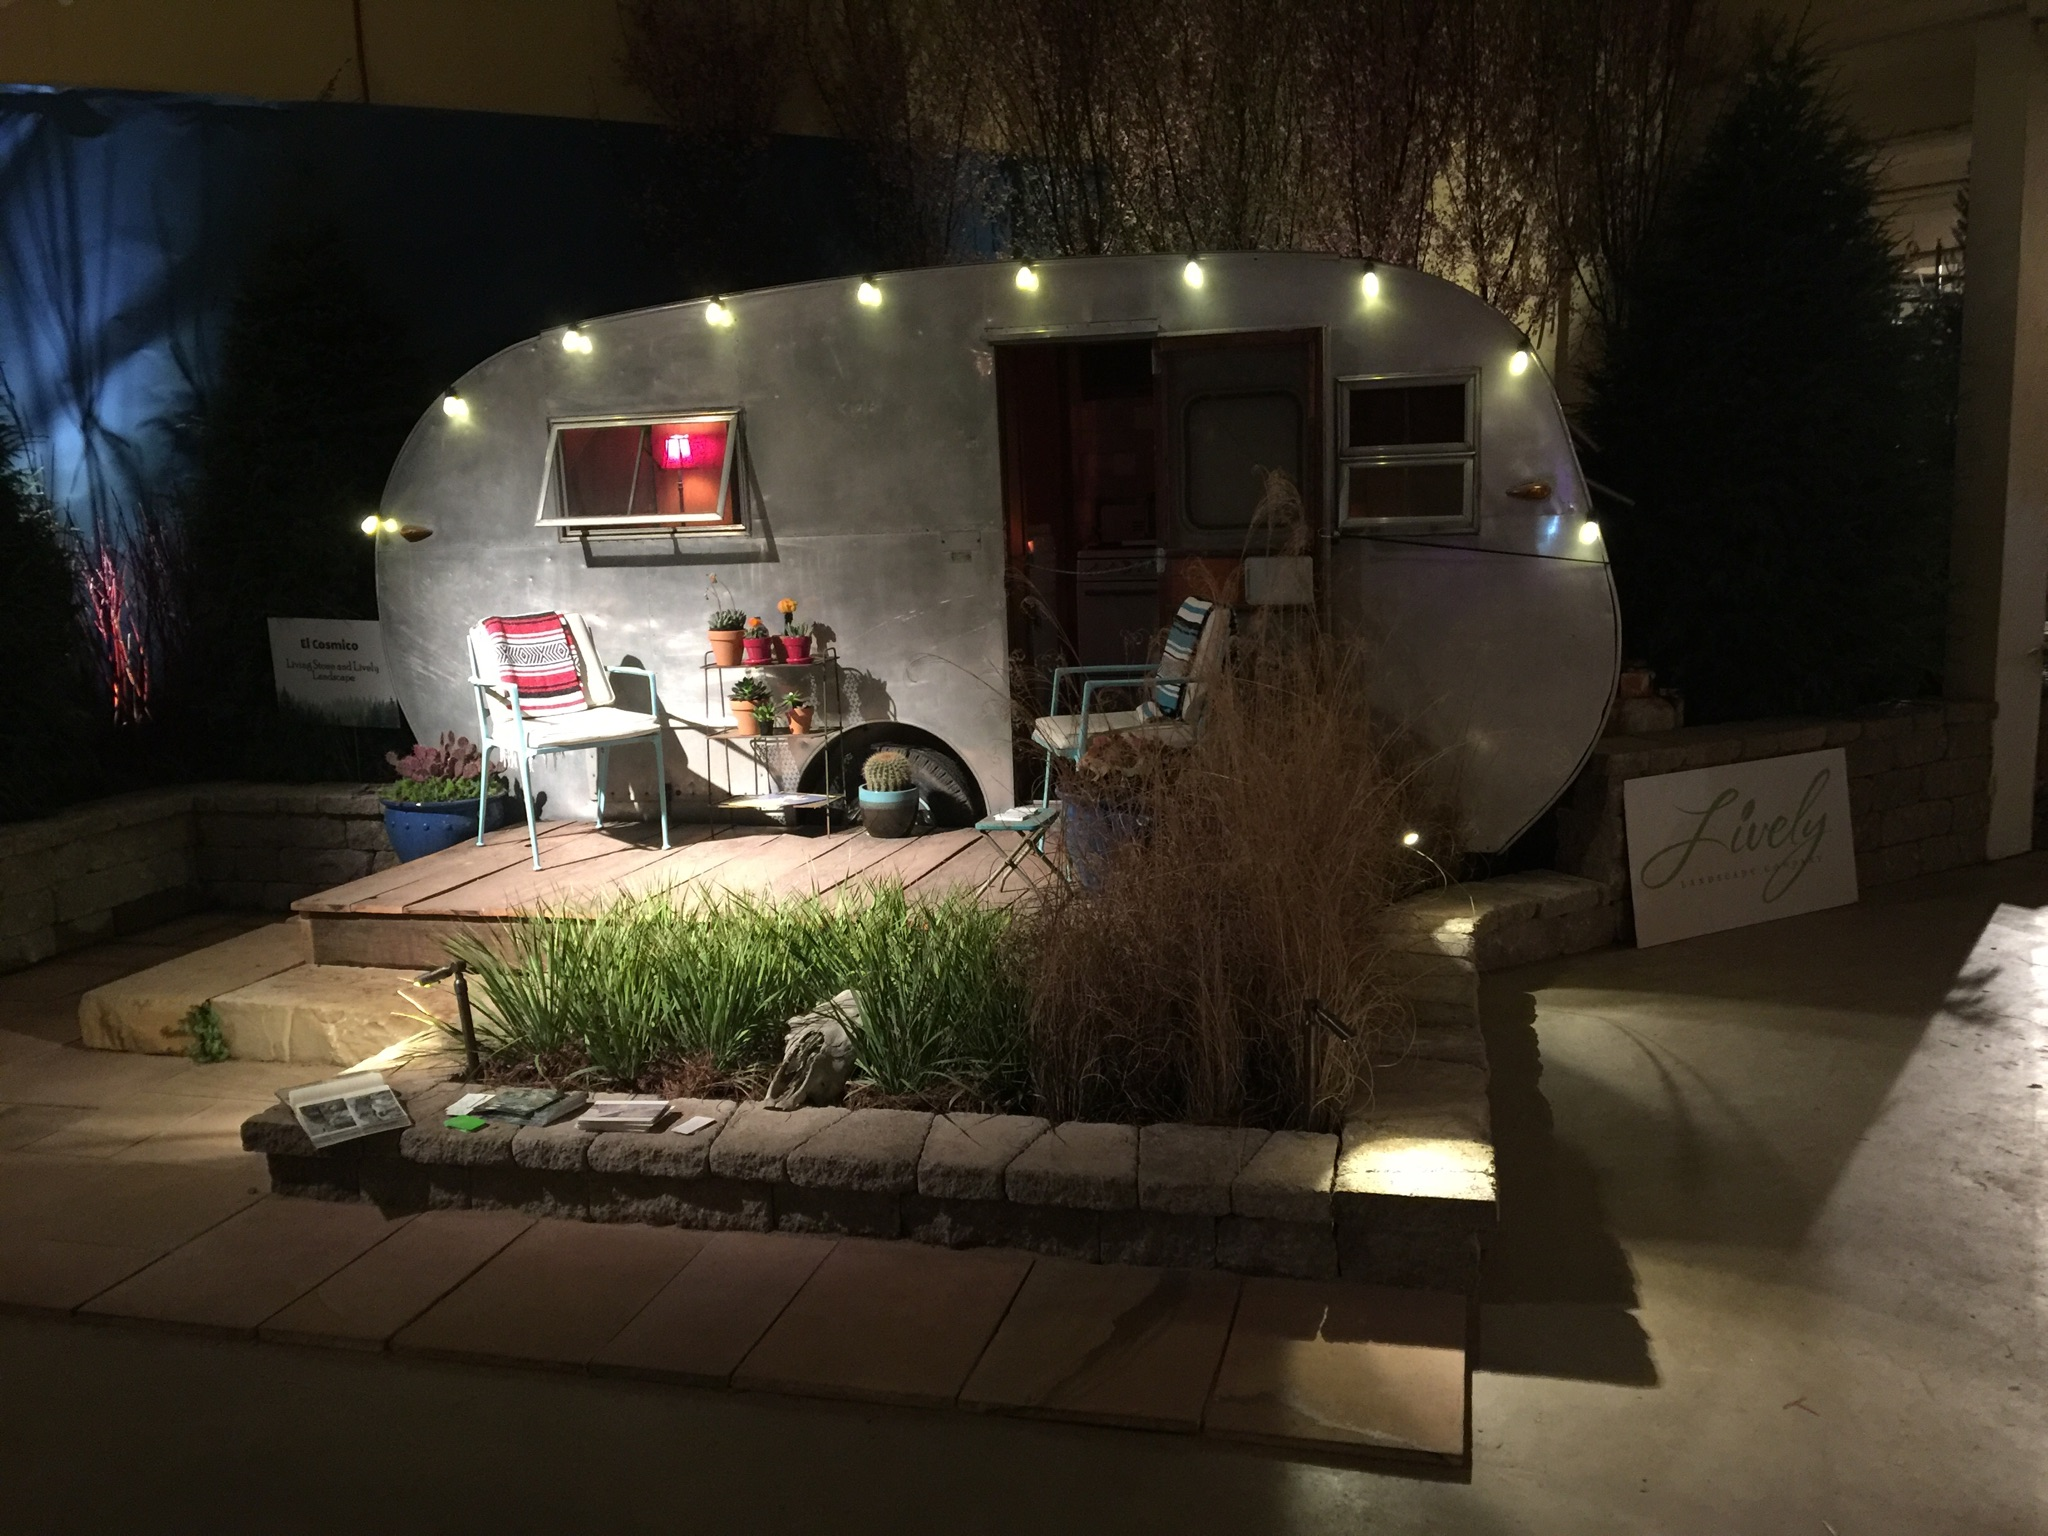 magnificent home and garden show nashville tn. One of this year s display that features our lighting  Glamping never looked so Garden Nashville Outdoor Lighting Perspectives